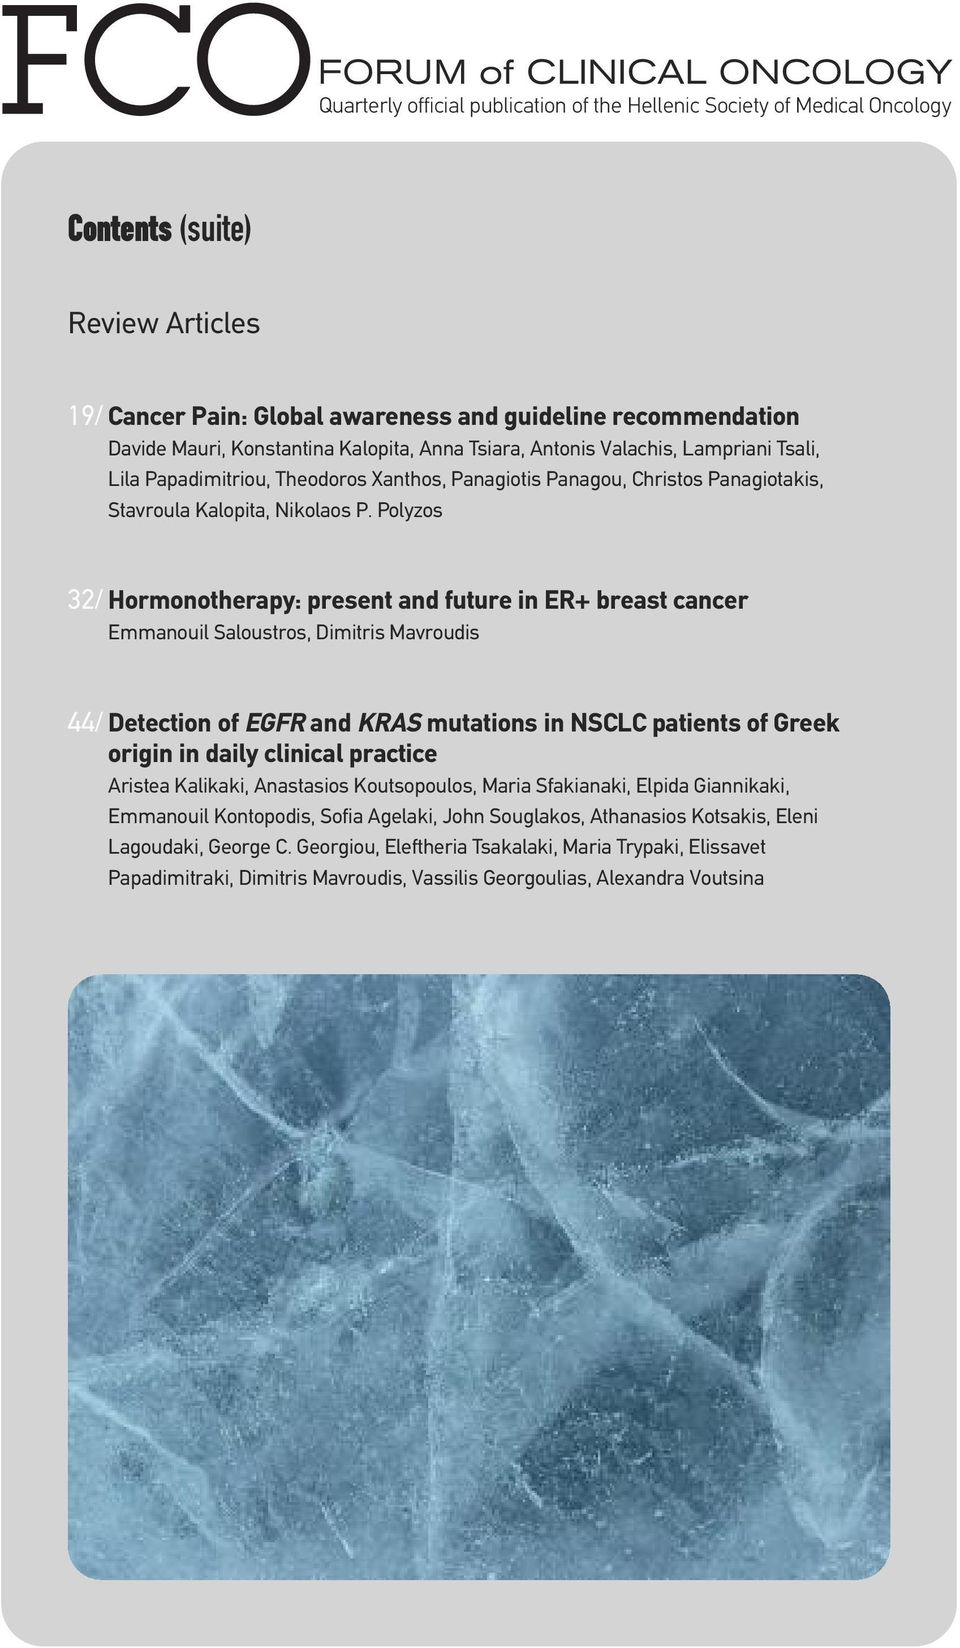 Polyzos 32/ Hormonotherapy: present and future in ER+ breast cancer Emmanouil Saloustros, Dimitris Mavroudis 44/ Detection of EGFR and KRAS mutations in NSCLC patients of Greek origin in daily